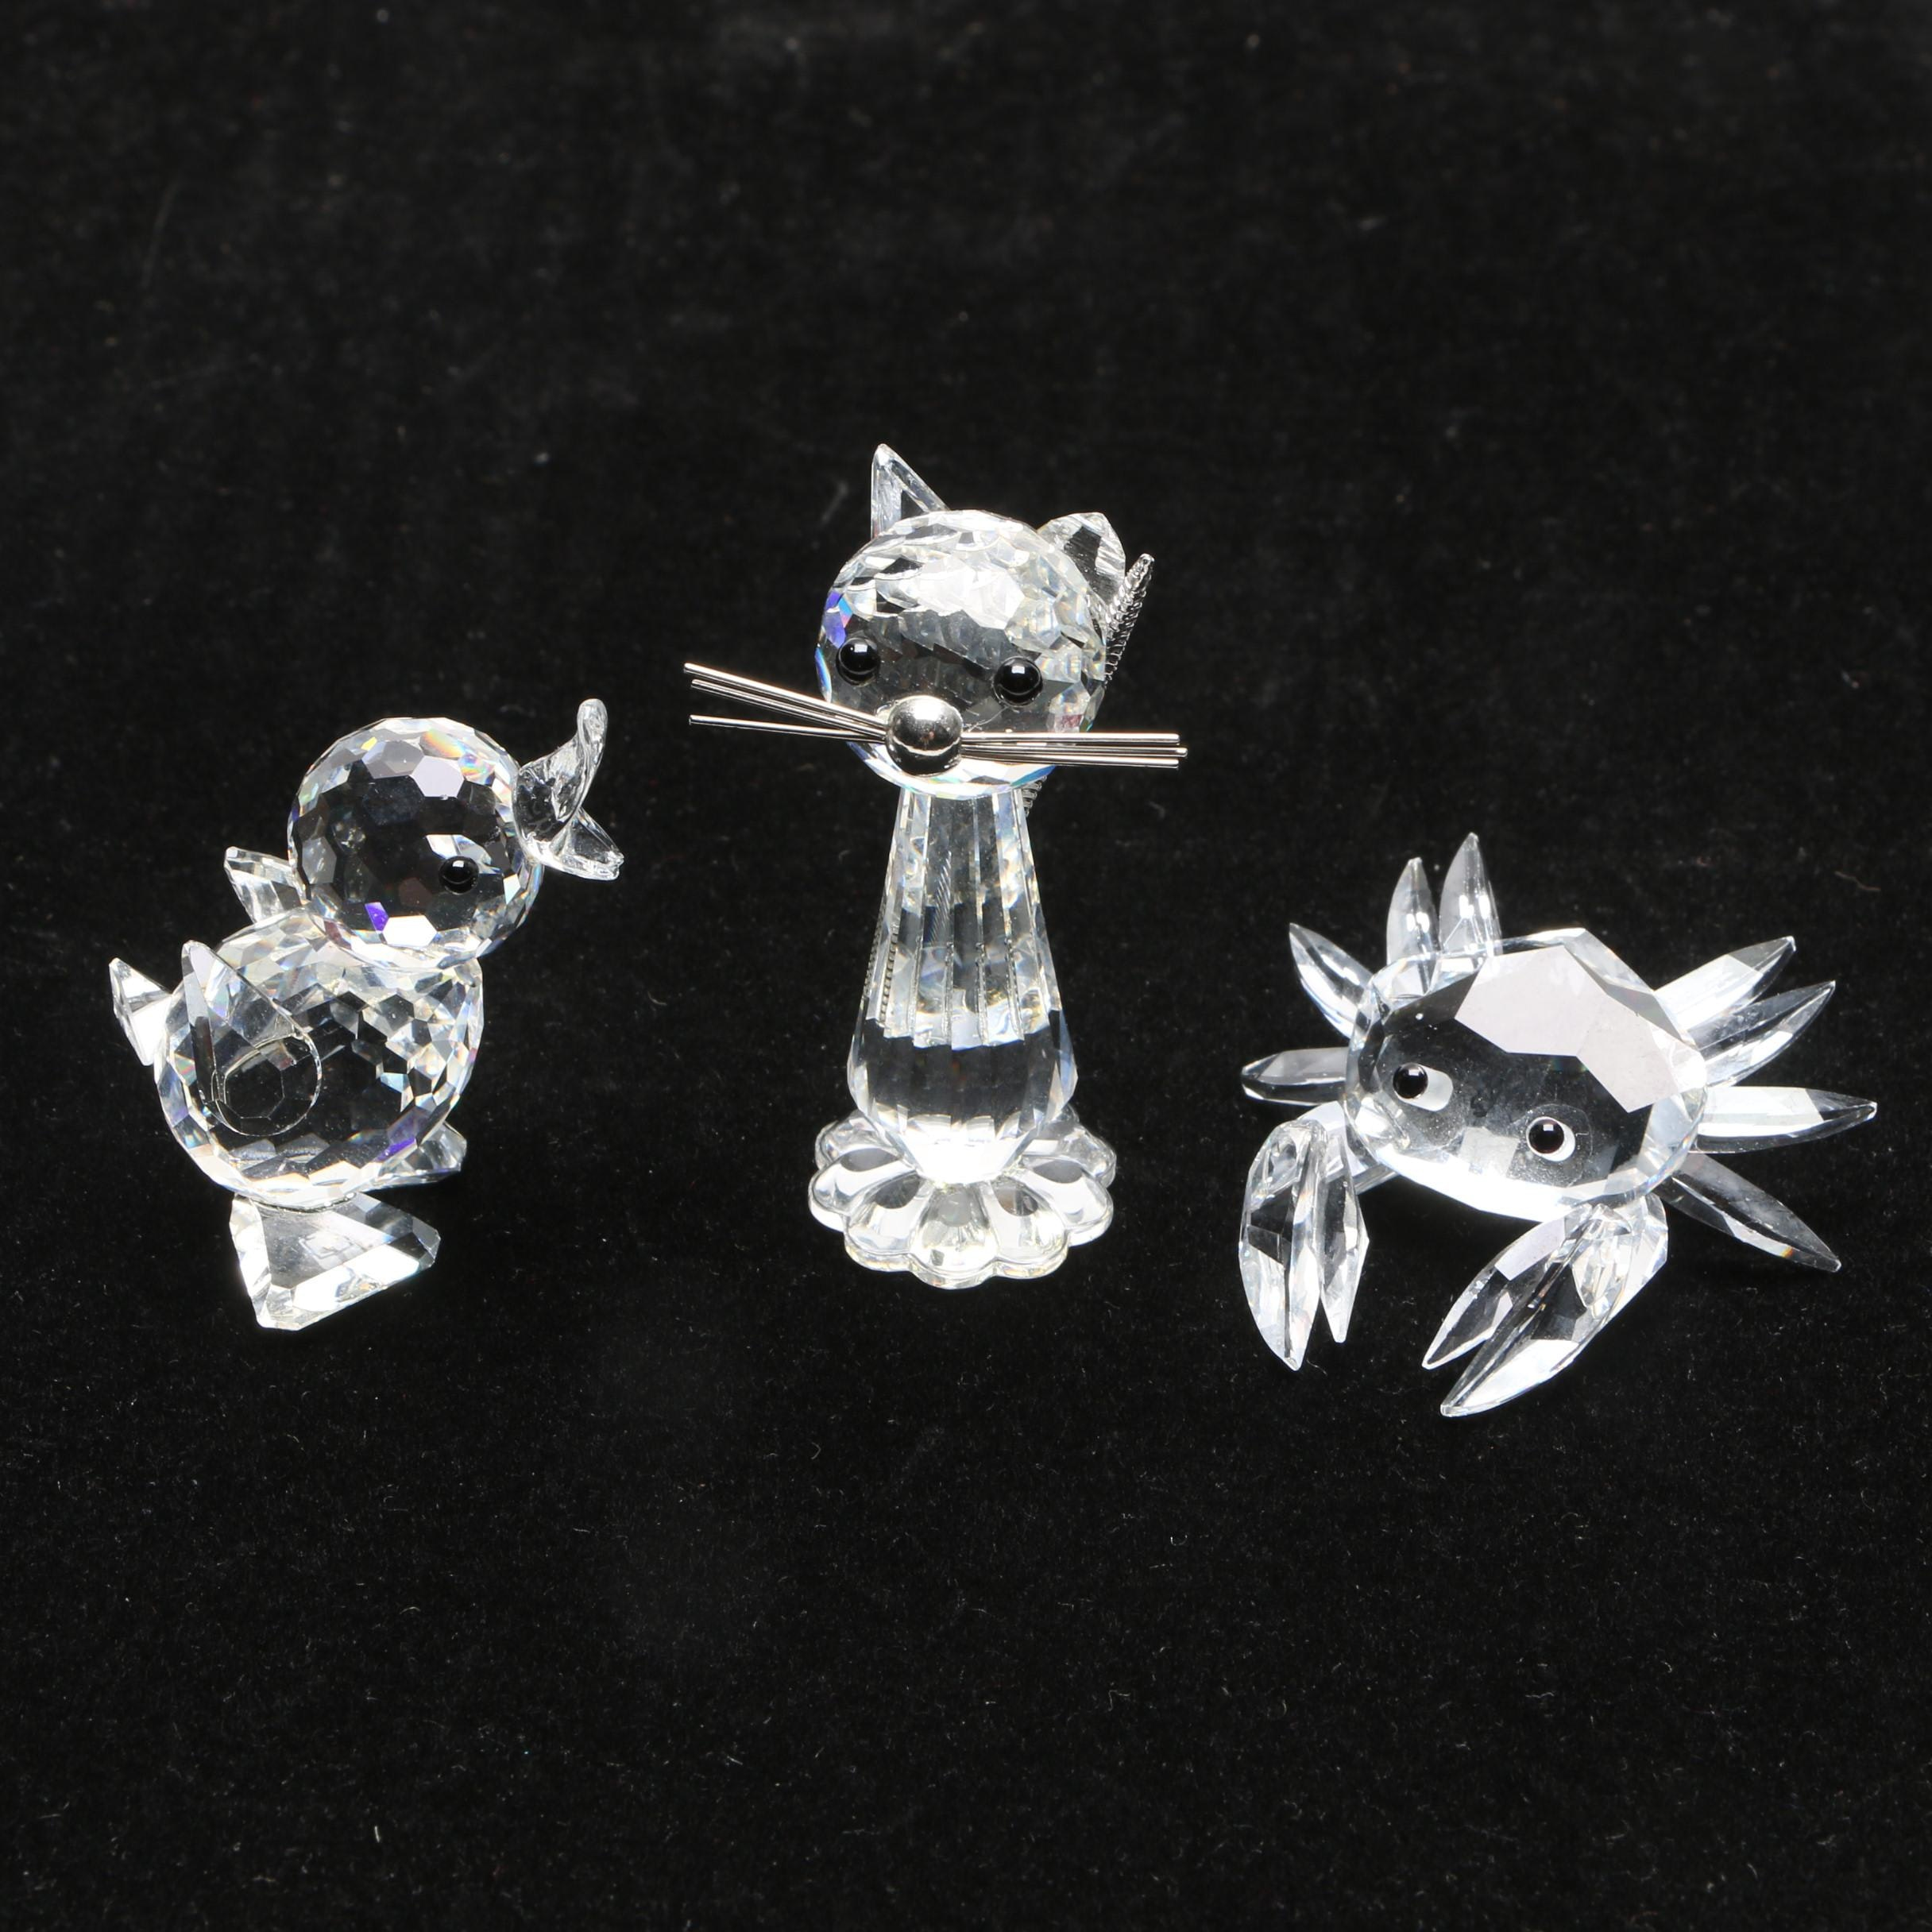 Swarovski Crystal Animal Figurines